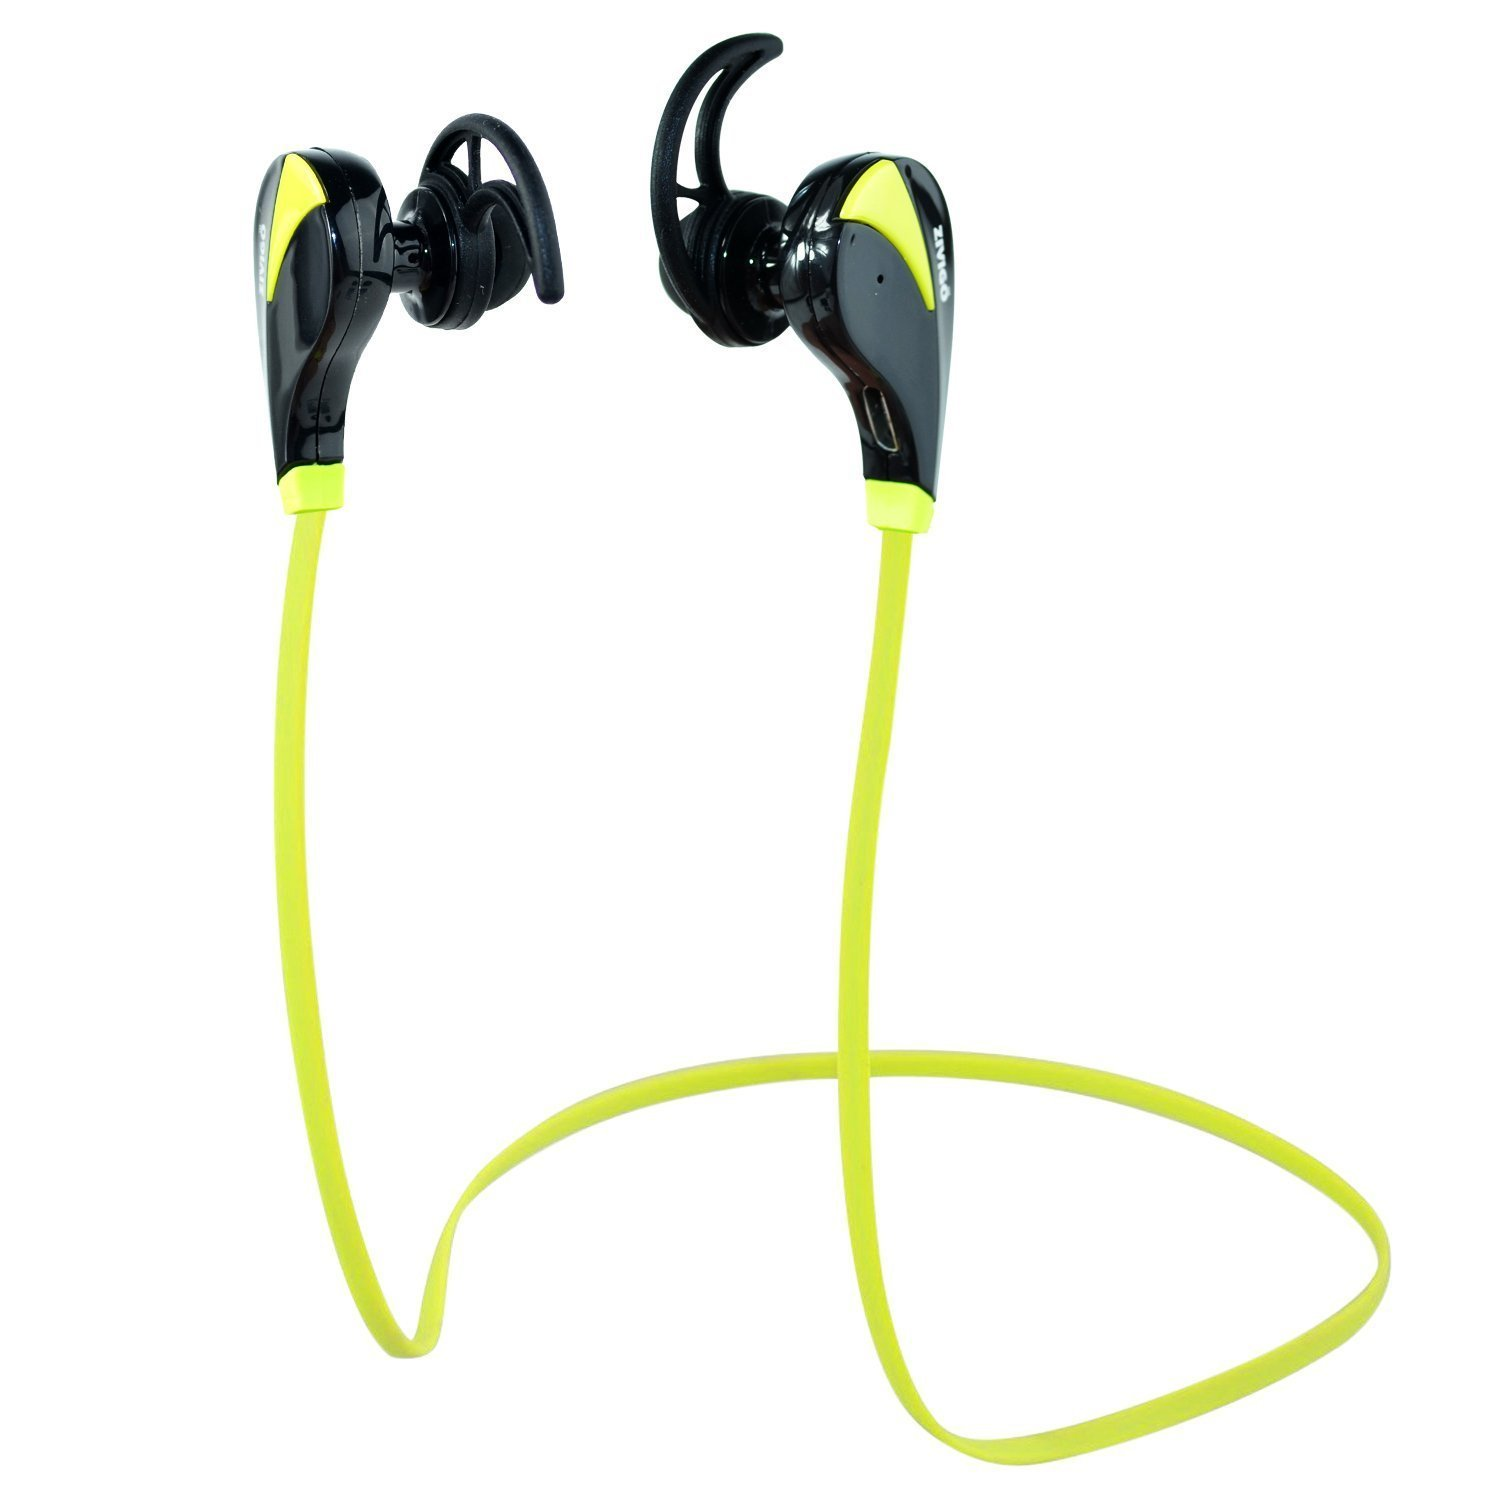 Bluetooth Headphones By Zivigo Lightweight Wireless Bluetooth Earbuds For Running, Bluetooth 4.0 with Aptx, Premium Sweat Proof Earbuds with Built in Microphone (Model ZV-600 Green)